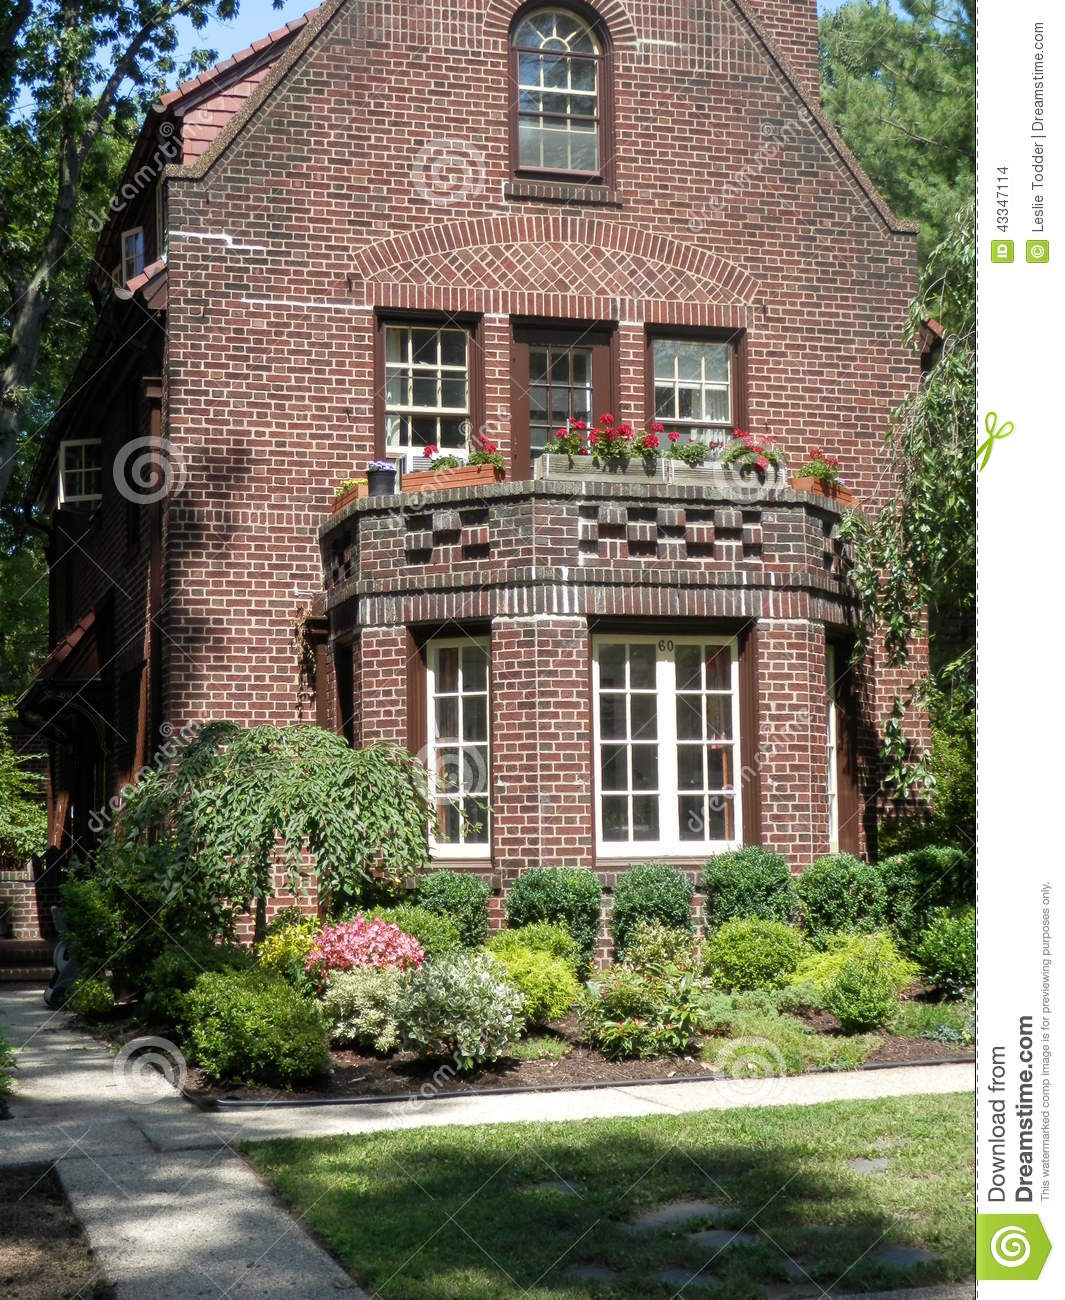 Tudor Style Brick Home In Forest Hills, N.Y. Stock Photo